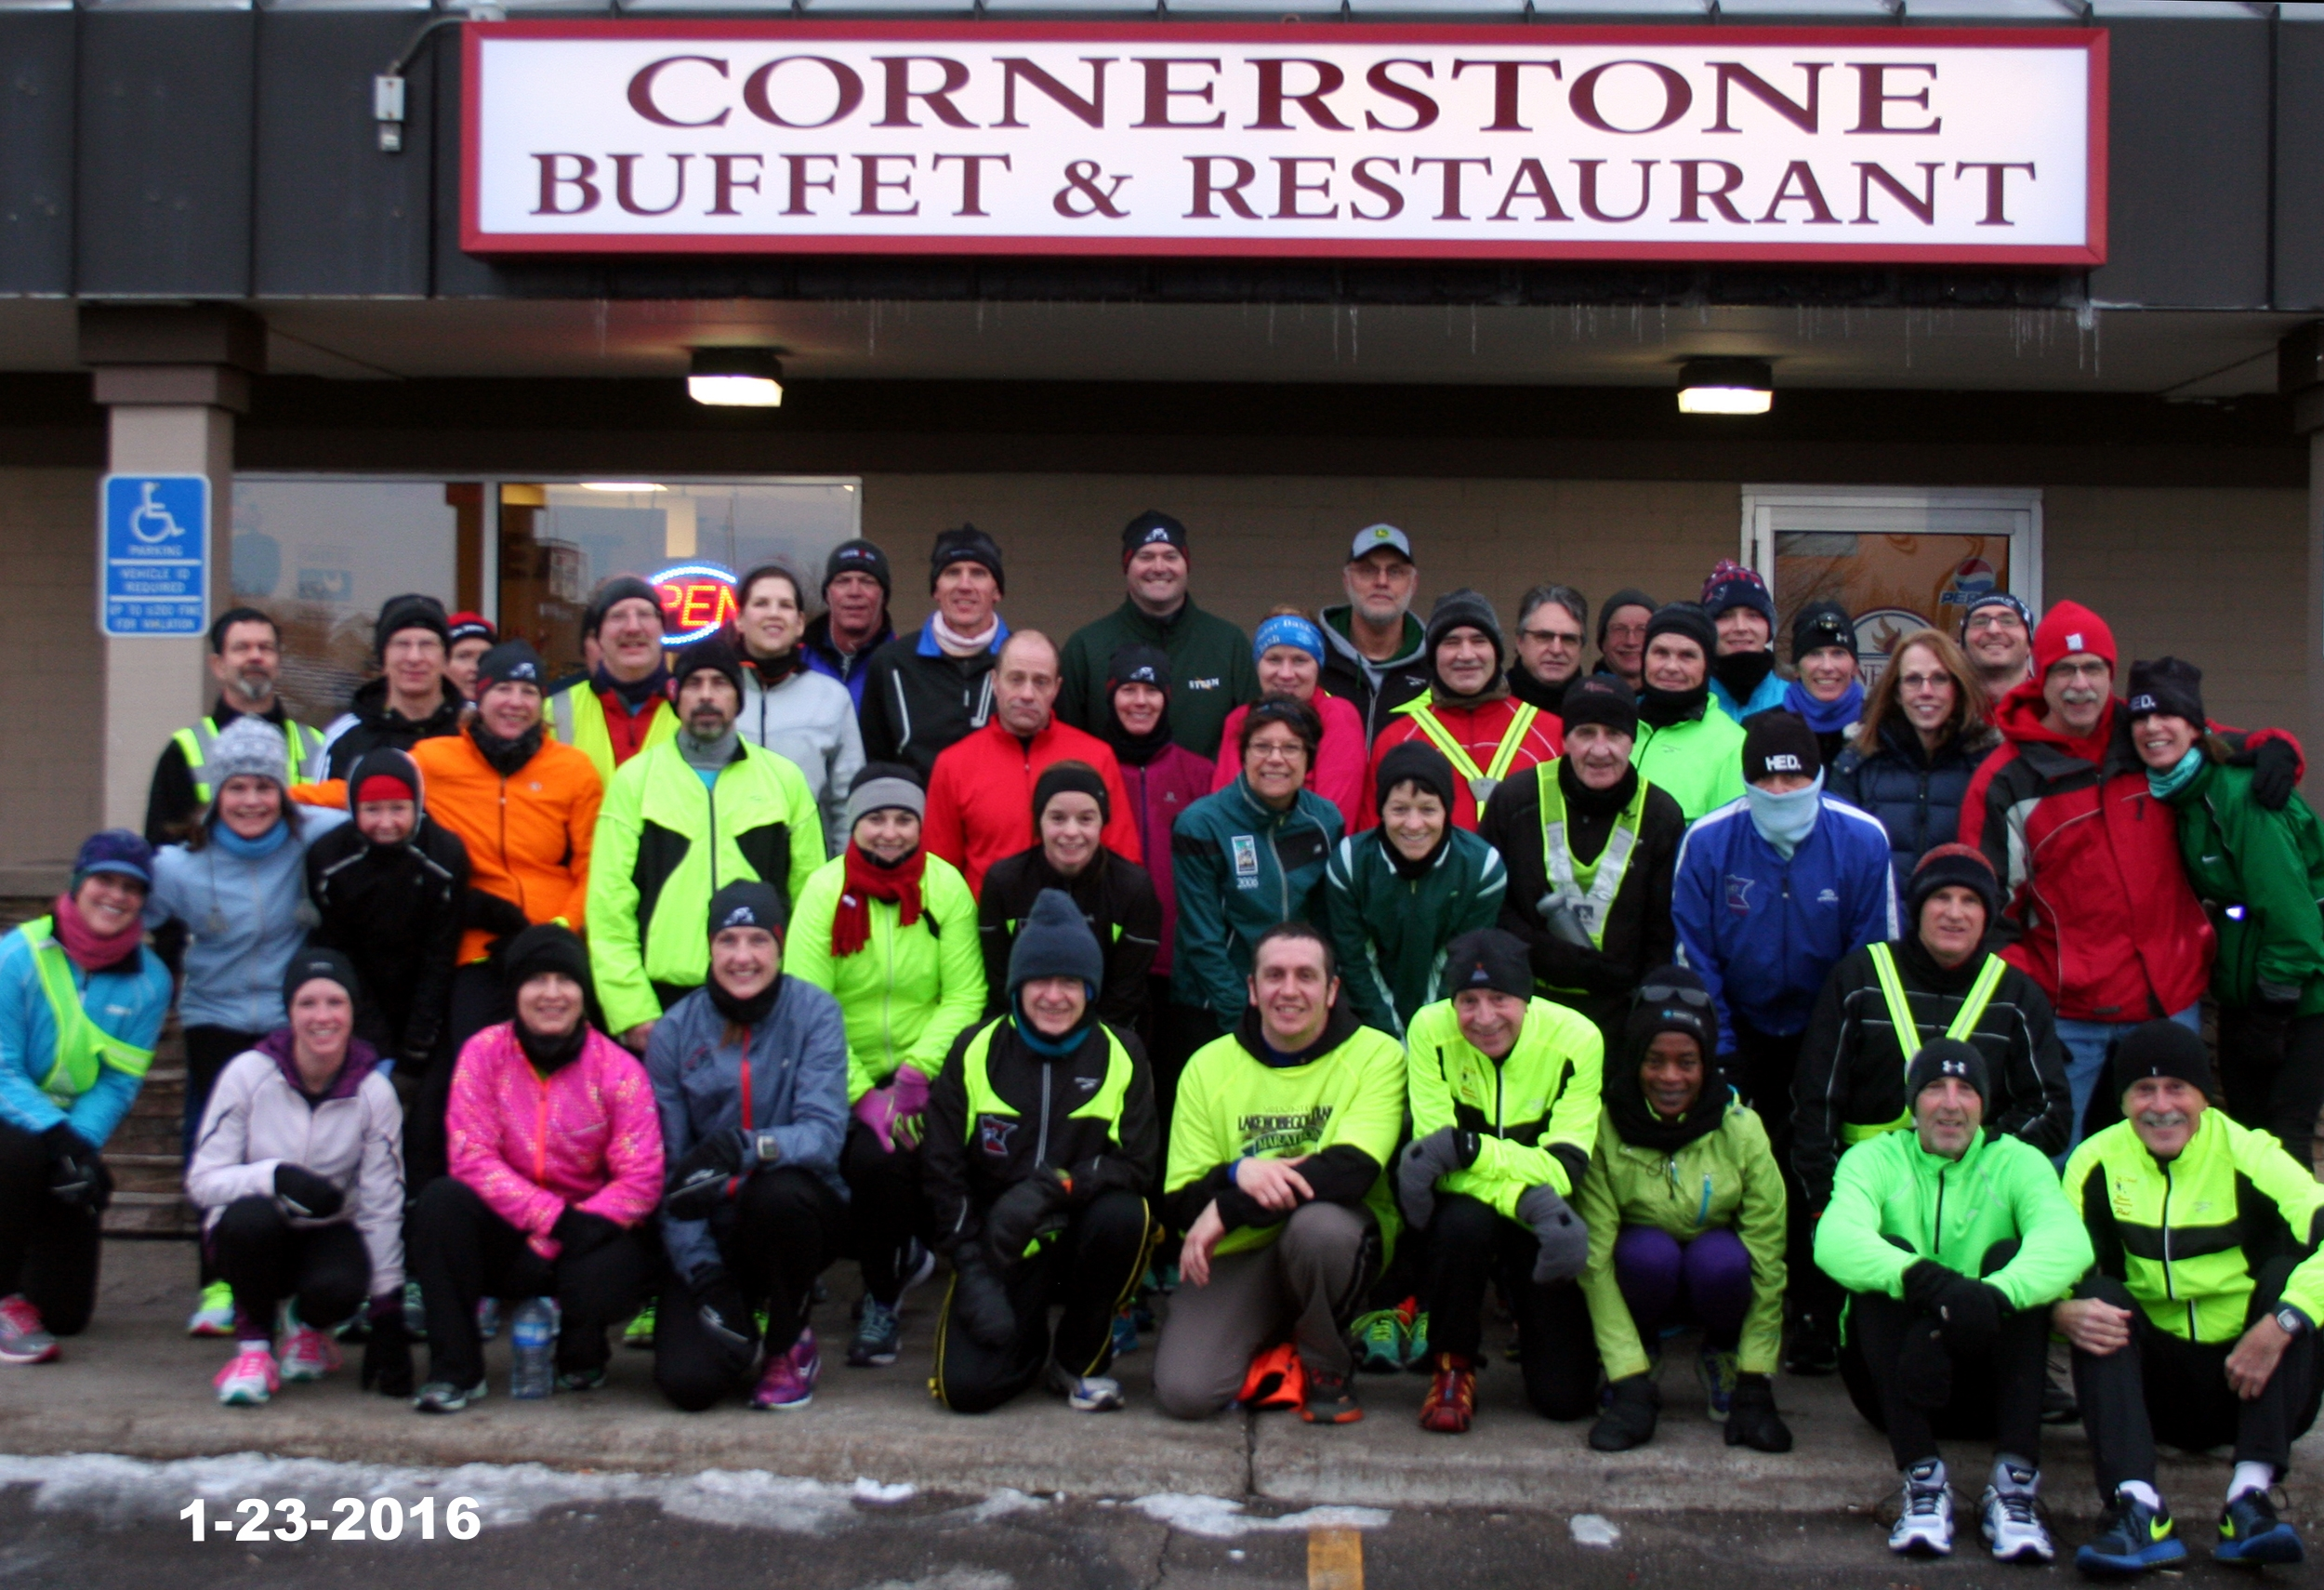 Breakfast Run 1-23-2016